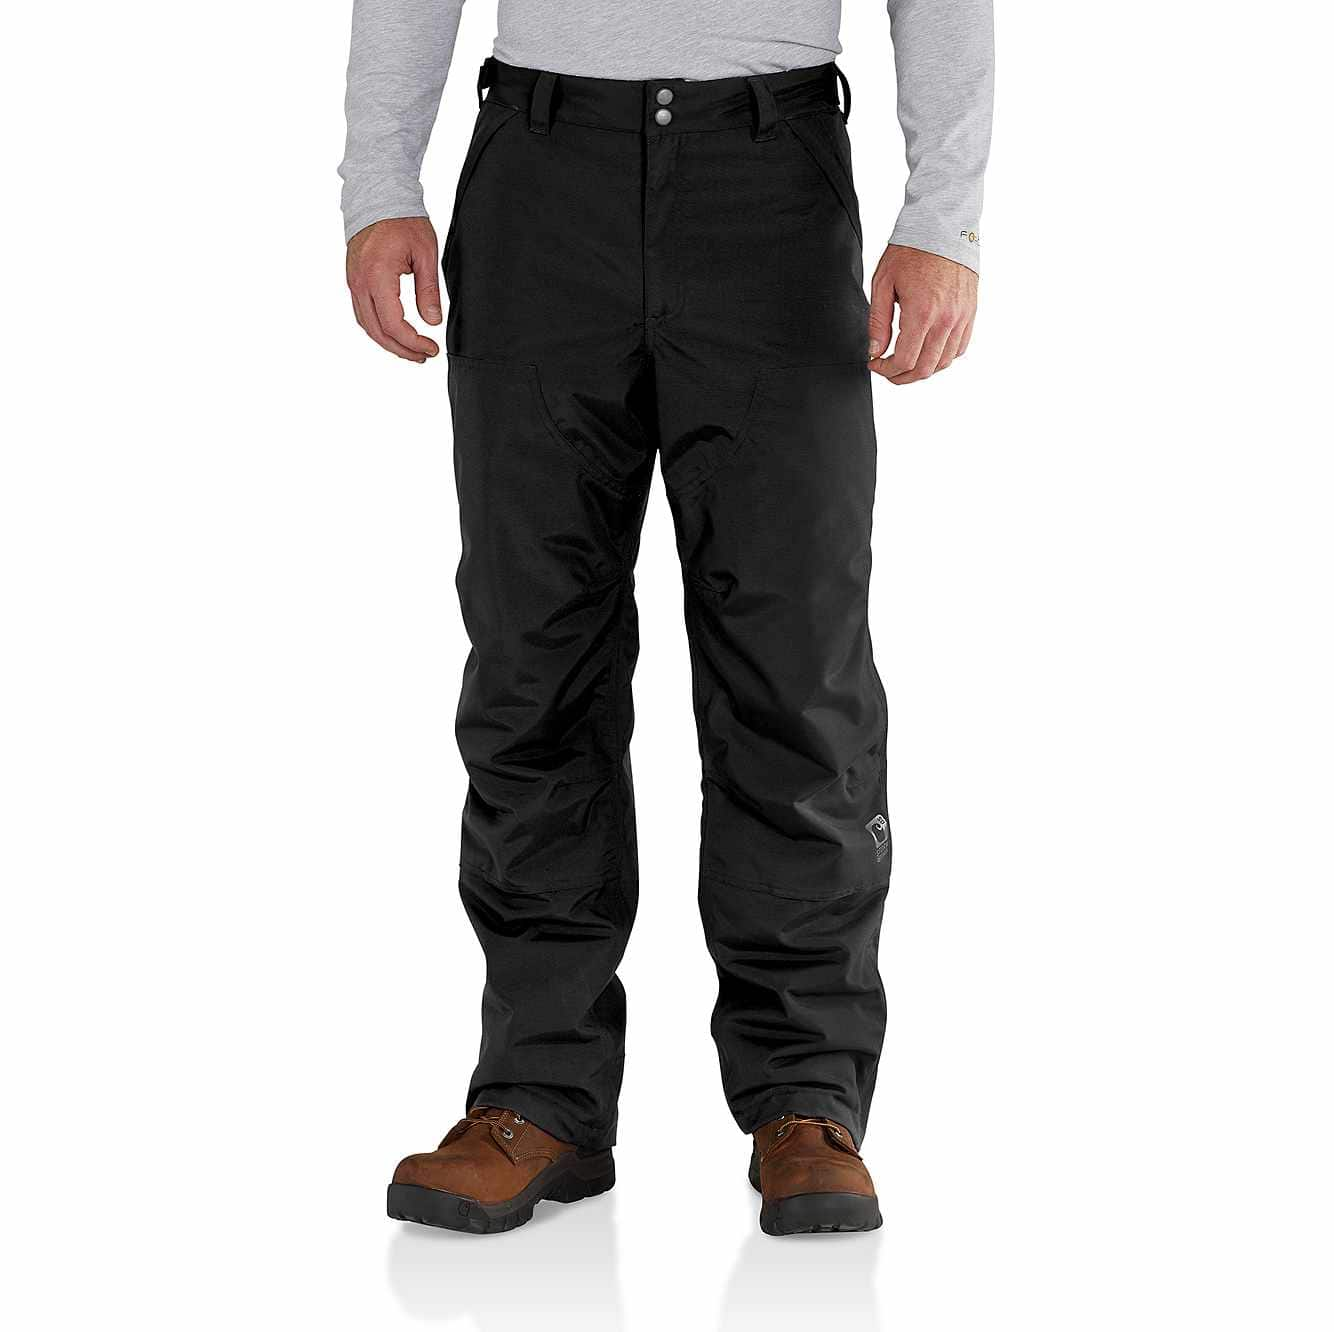 Picture of Insulated Shoreline Pant in Black